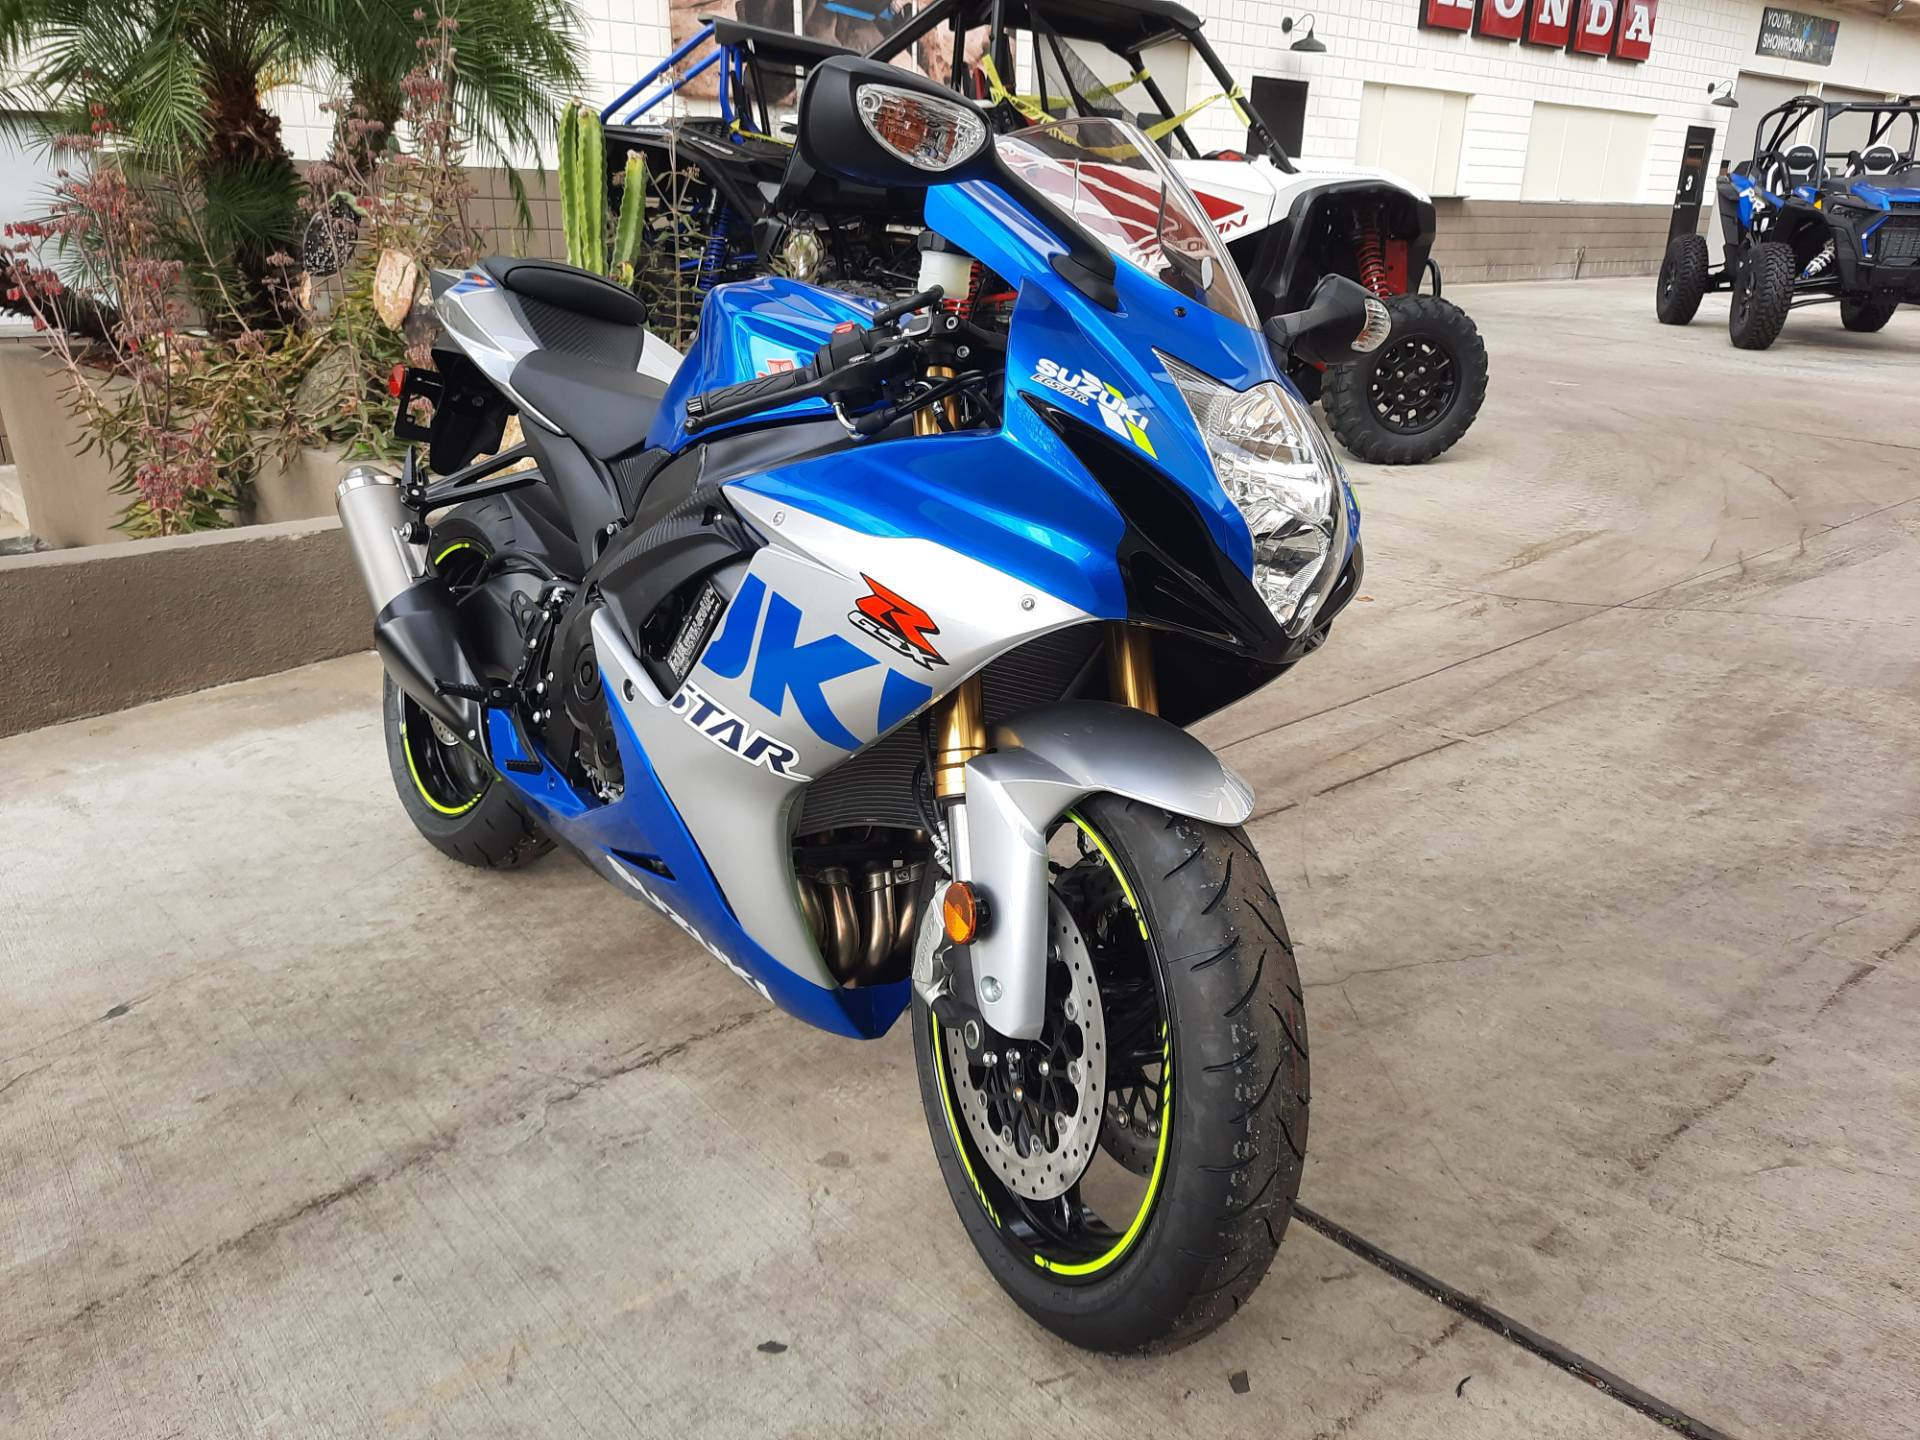 2021 Suzuki GSX-R750 100th Anniversary Edition in Ontario, California - Photo 8